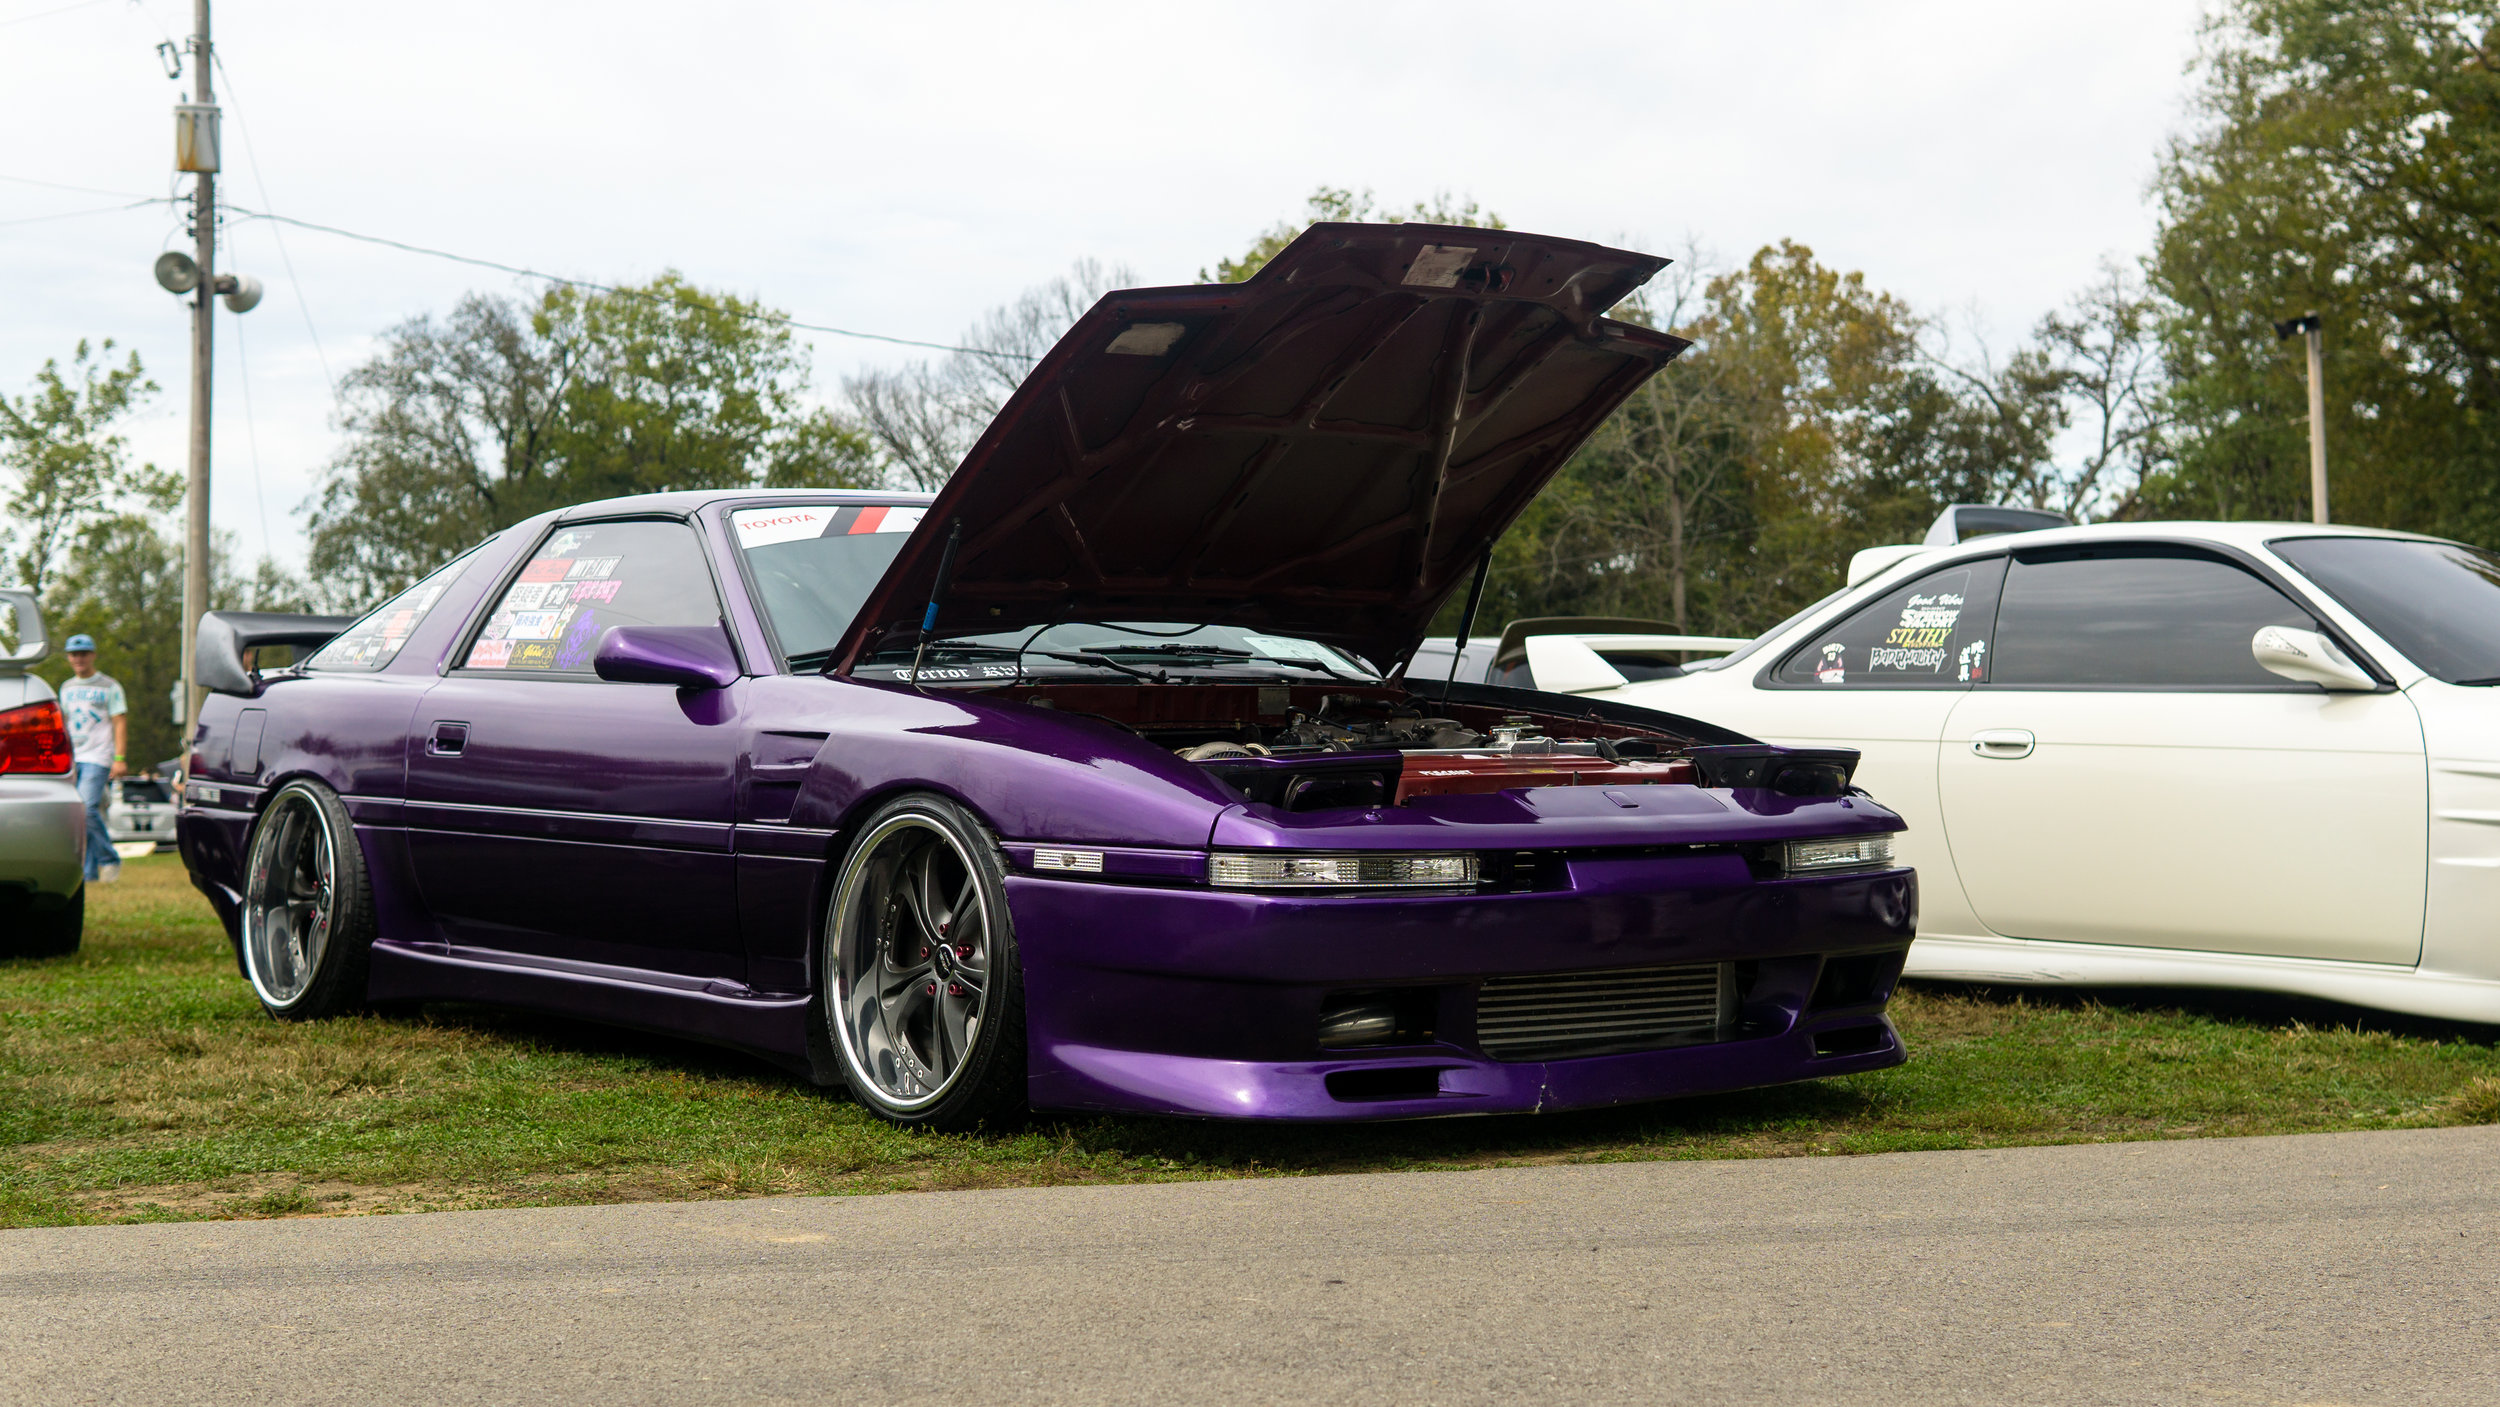 Super clean older supra